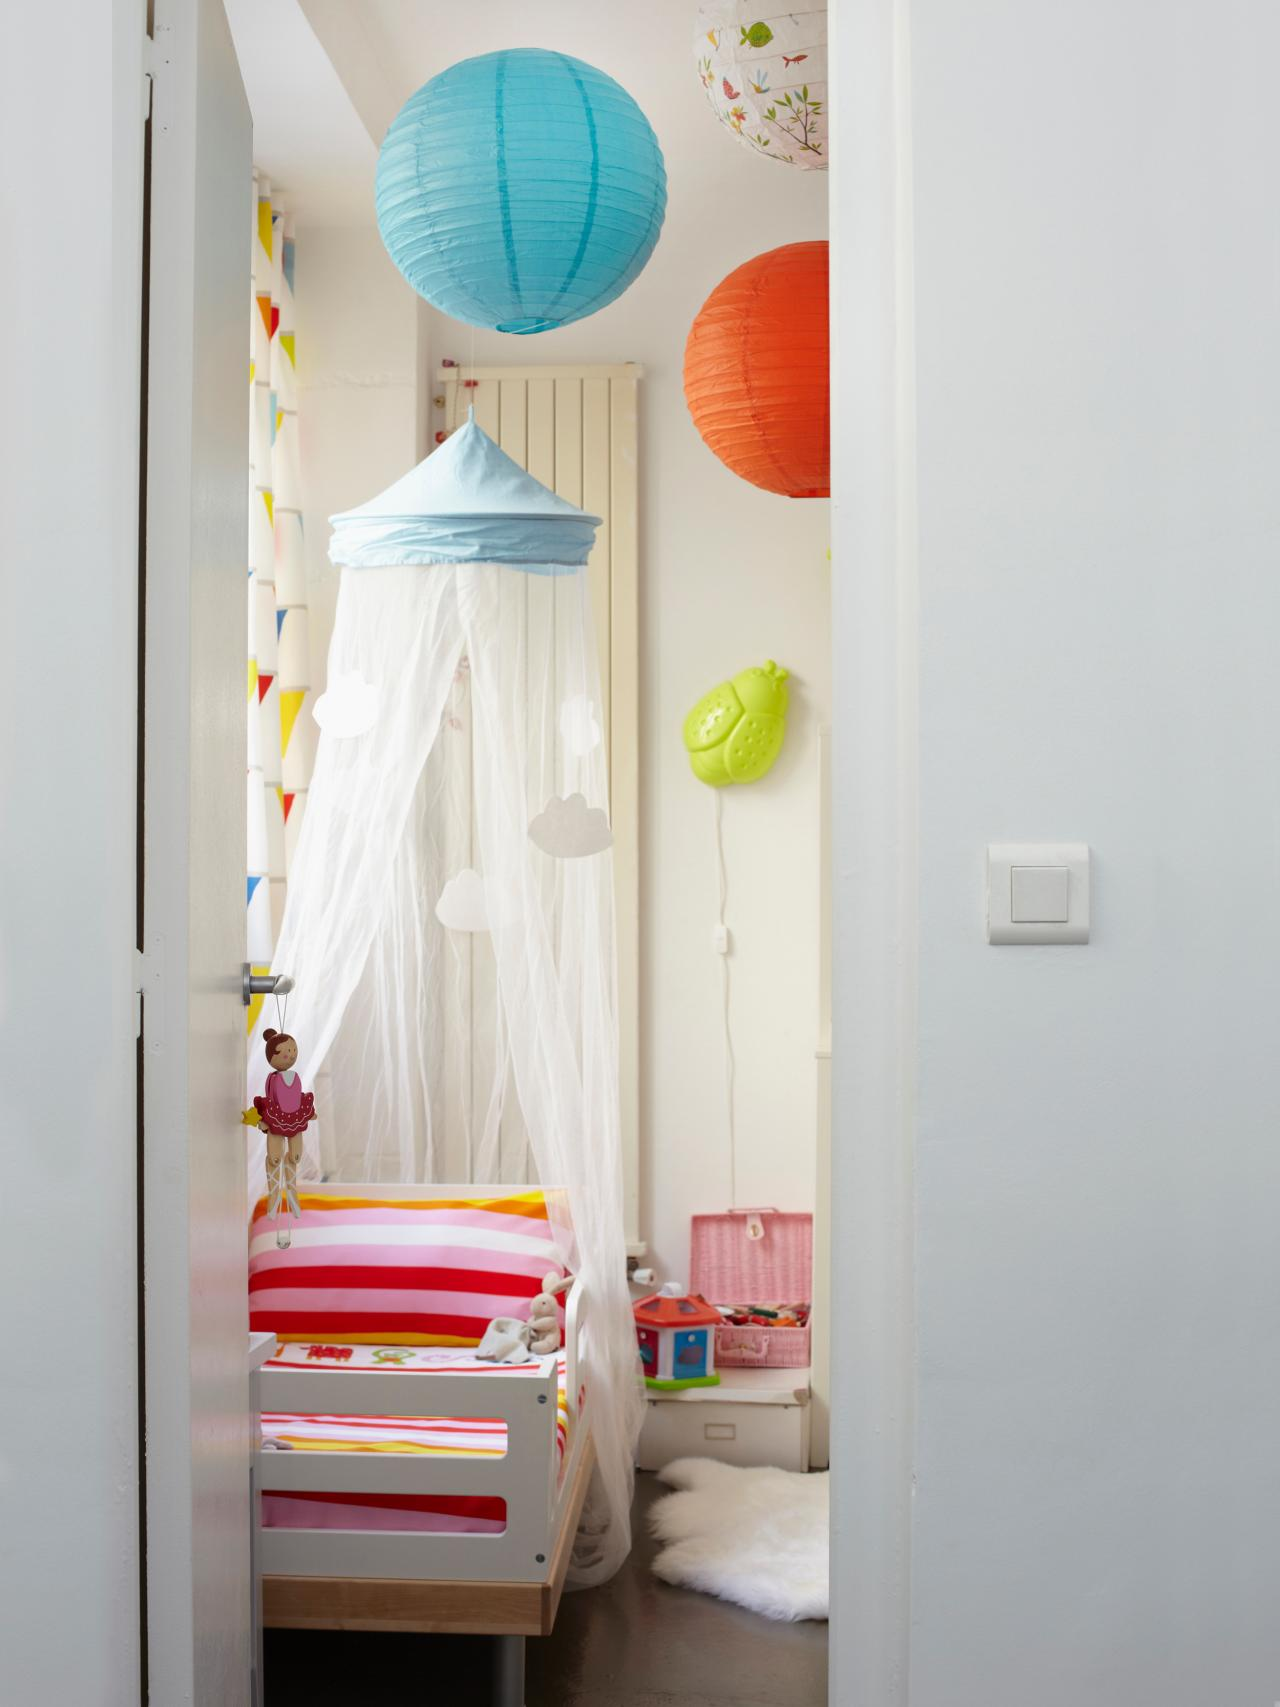 & 20 Whimsical Toddler Bedrooms for Little Girls